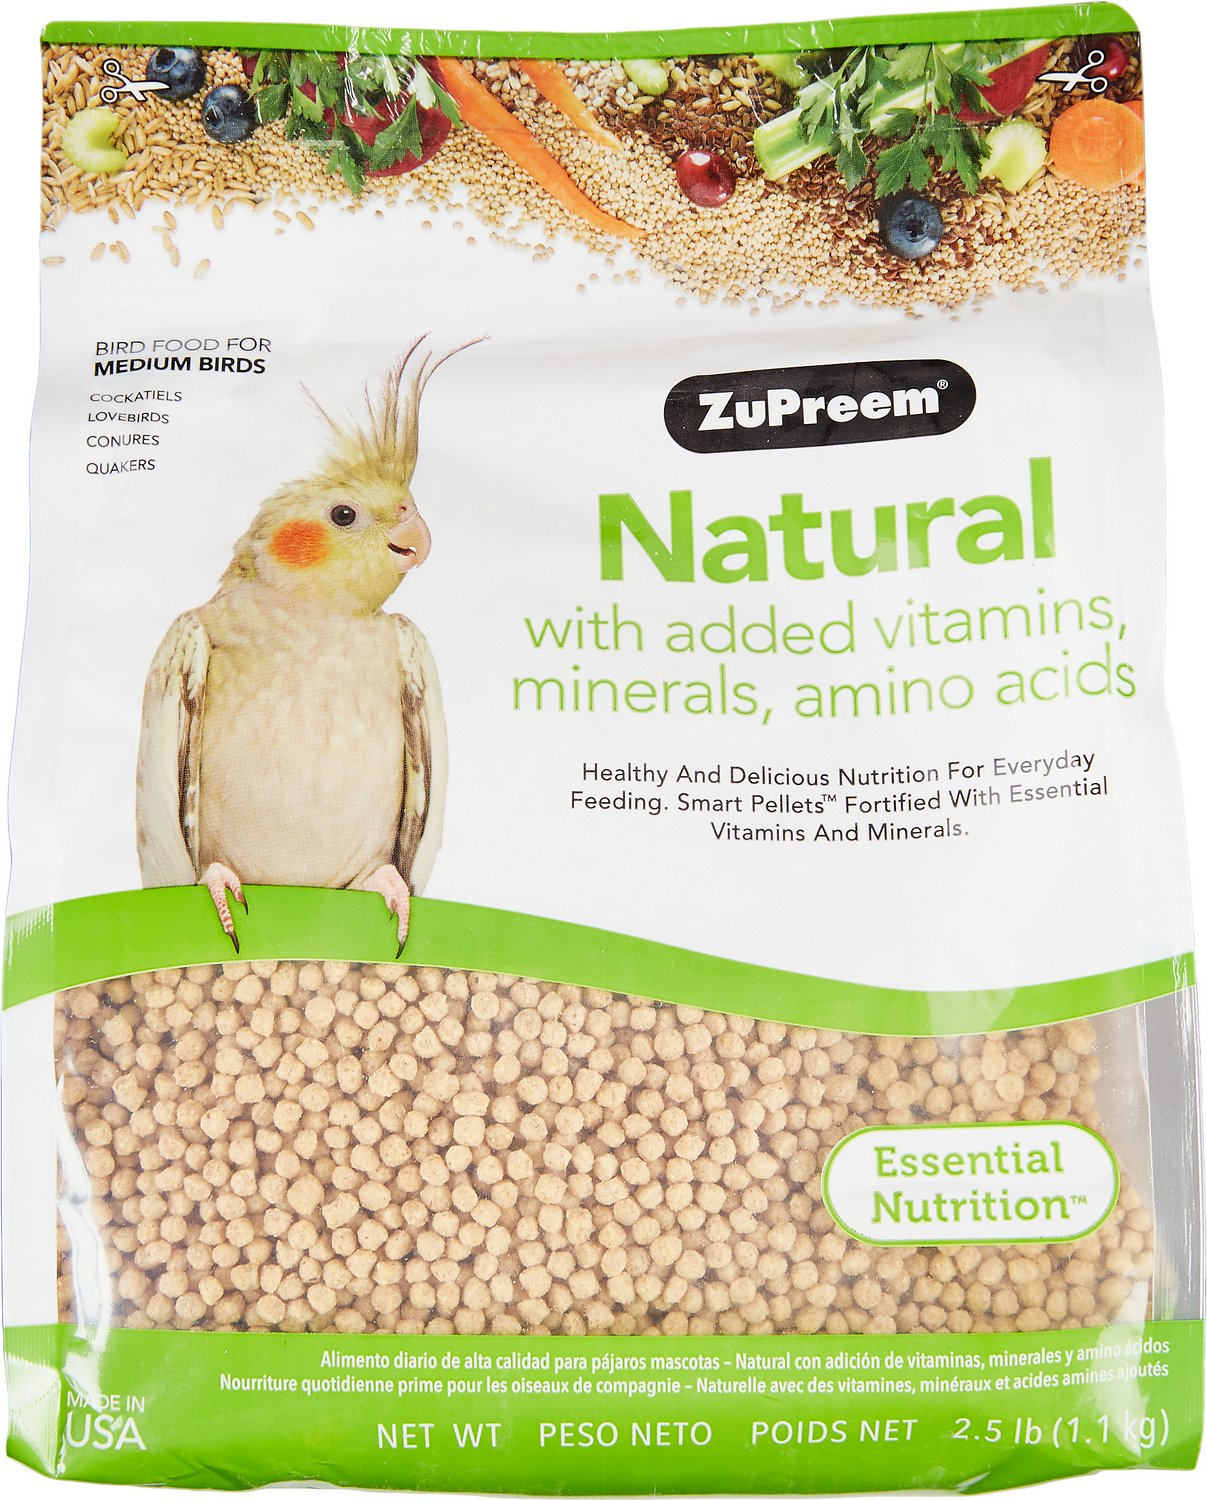 ZuPreem Natural with Vitamins & Minerals Medium Bird Food, 2.5-lb bag Image